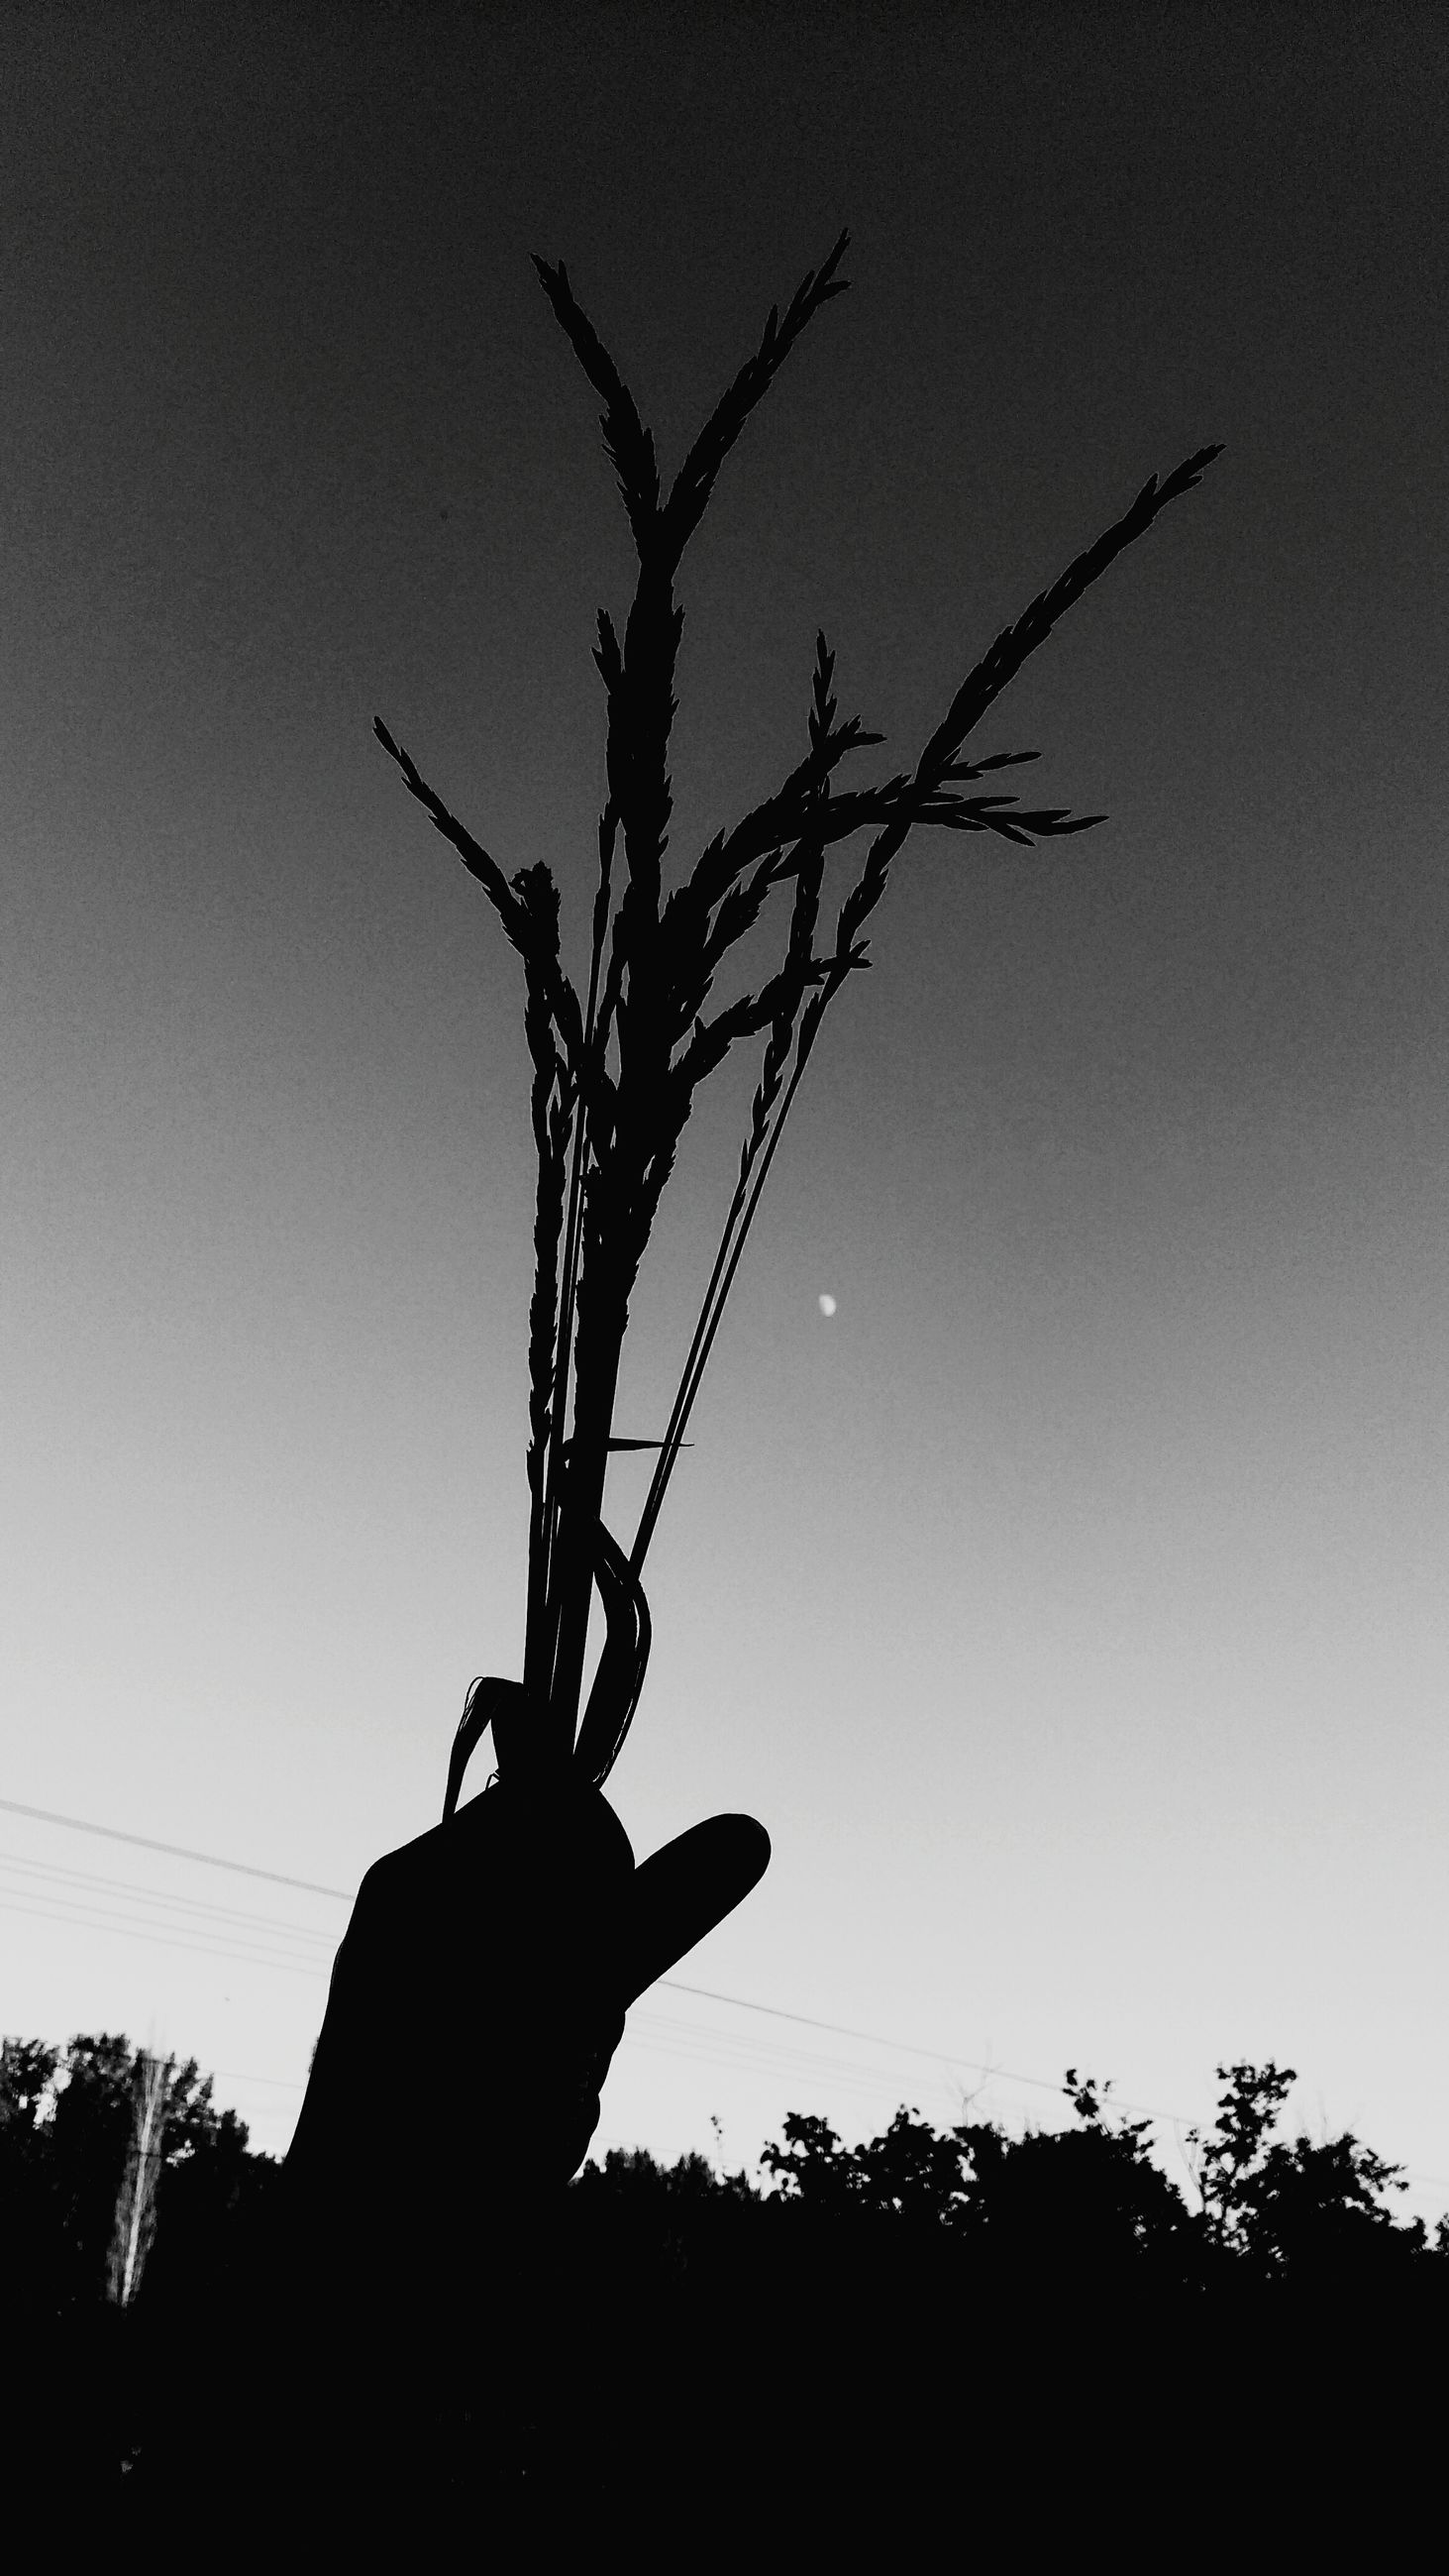 silhouette, leisure activity, lifestyles, holding, sky, men, person, tree, low angle view, clear sky, field, nature, copy space, outdoors, plant, side view, unrecognizable person, landscape